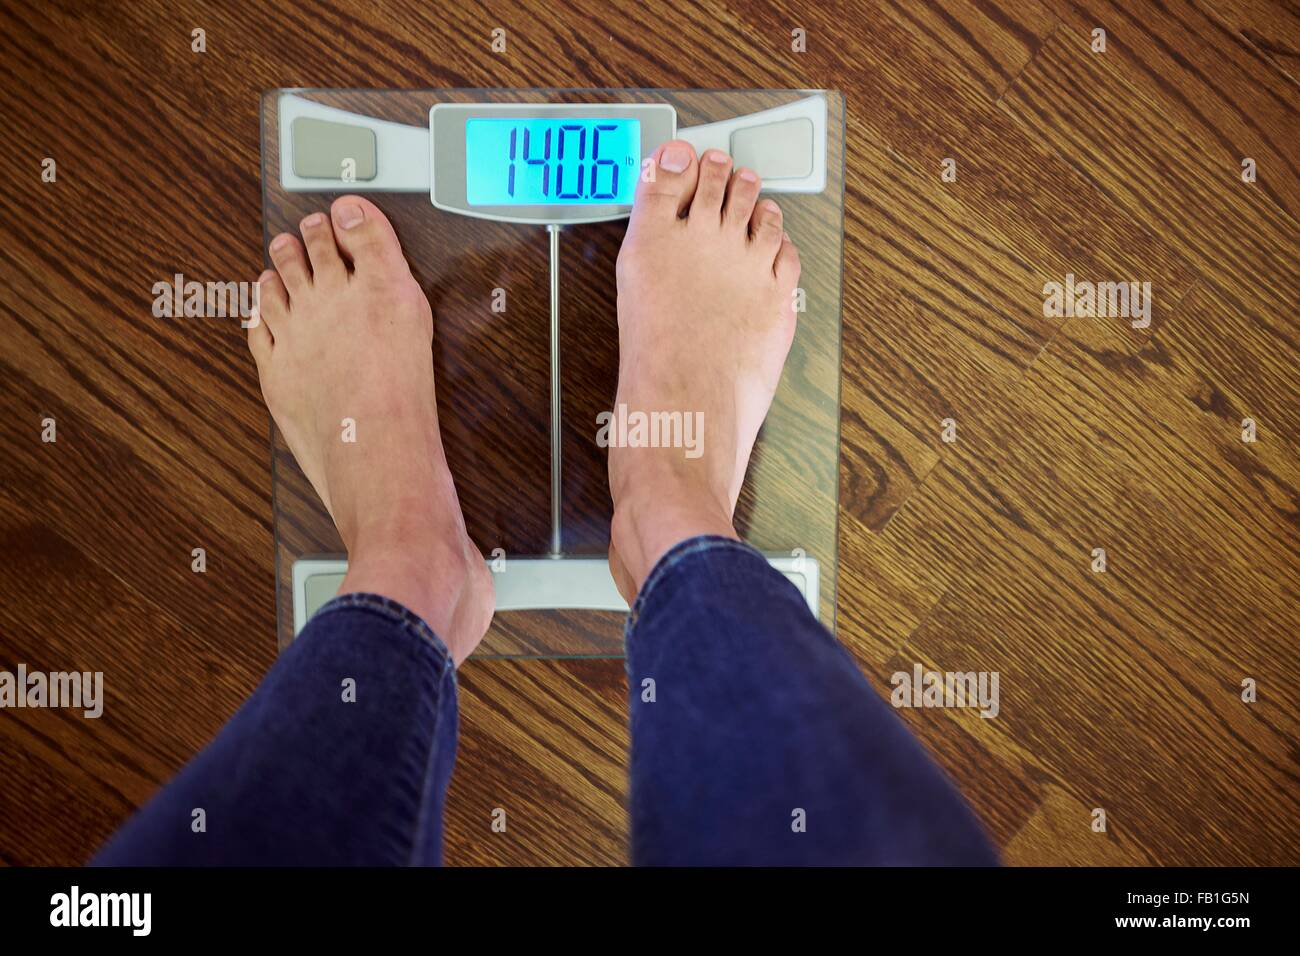 Woman standing scales with digital display, low section, elevated view - Stock Image